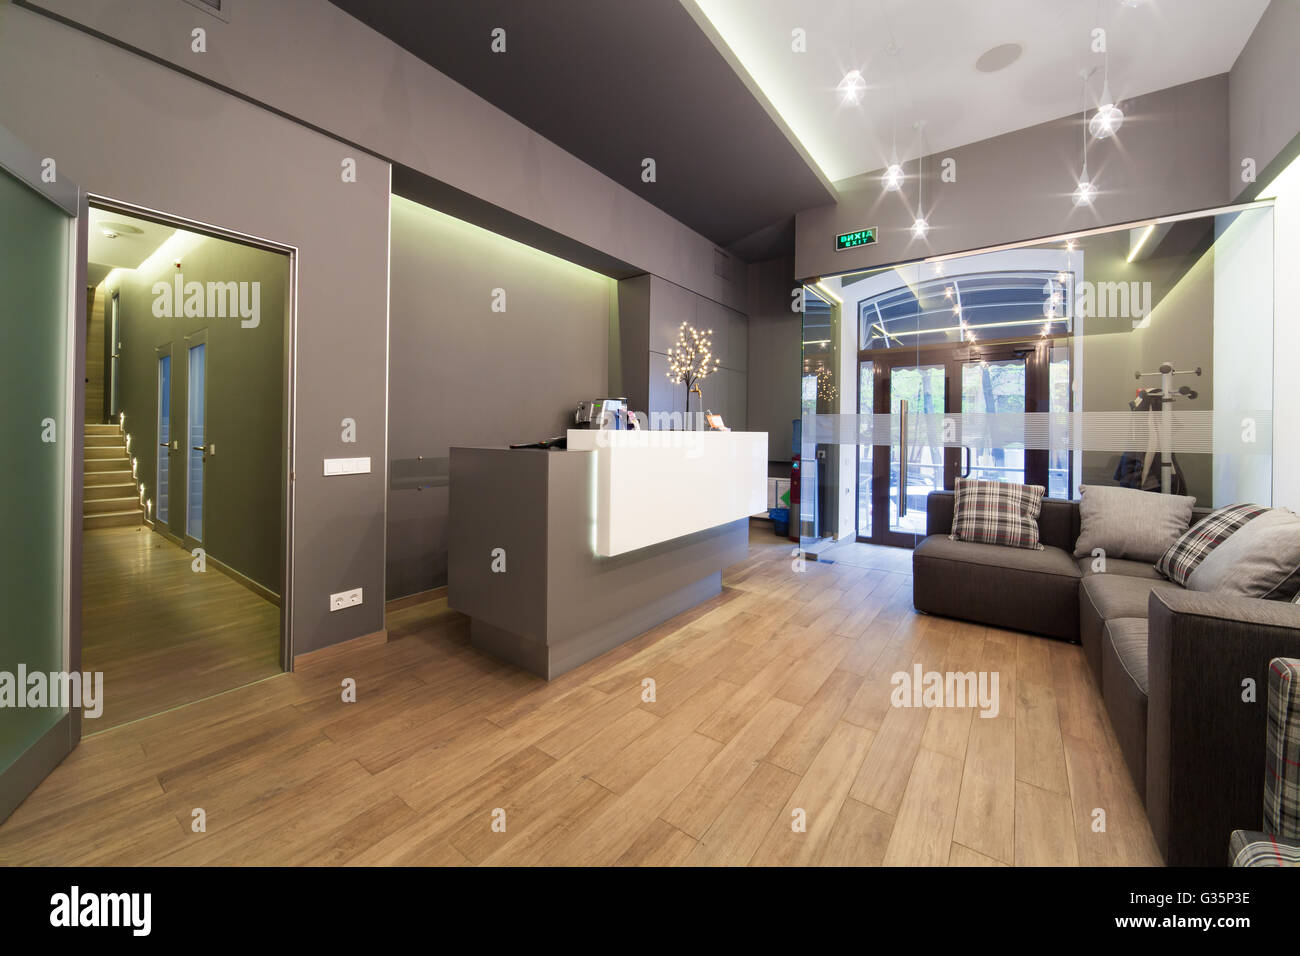 modern interior design lobby at dental clinic stock photo